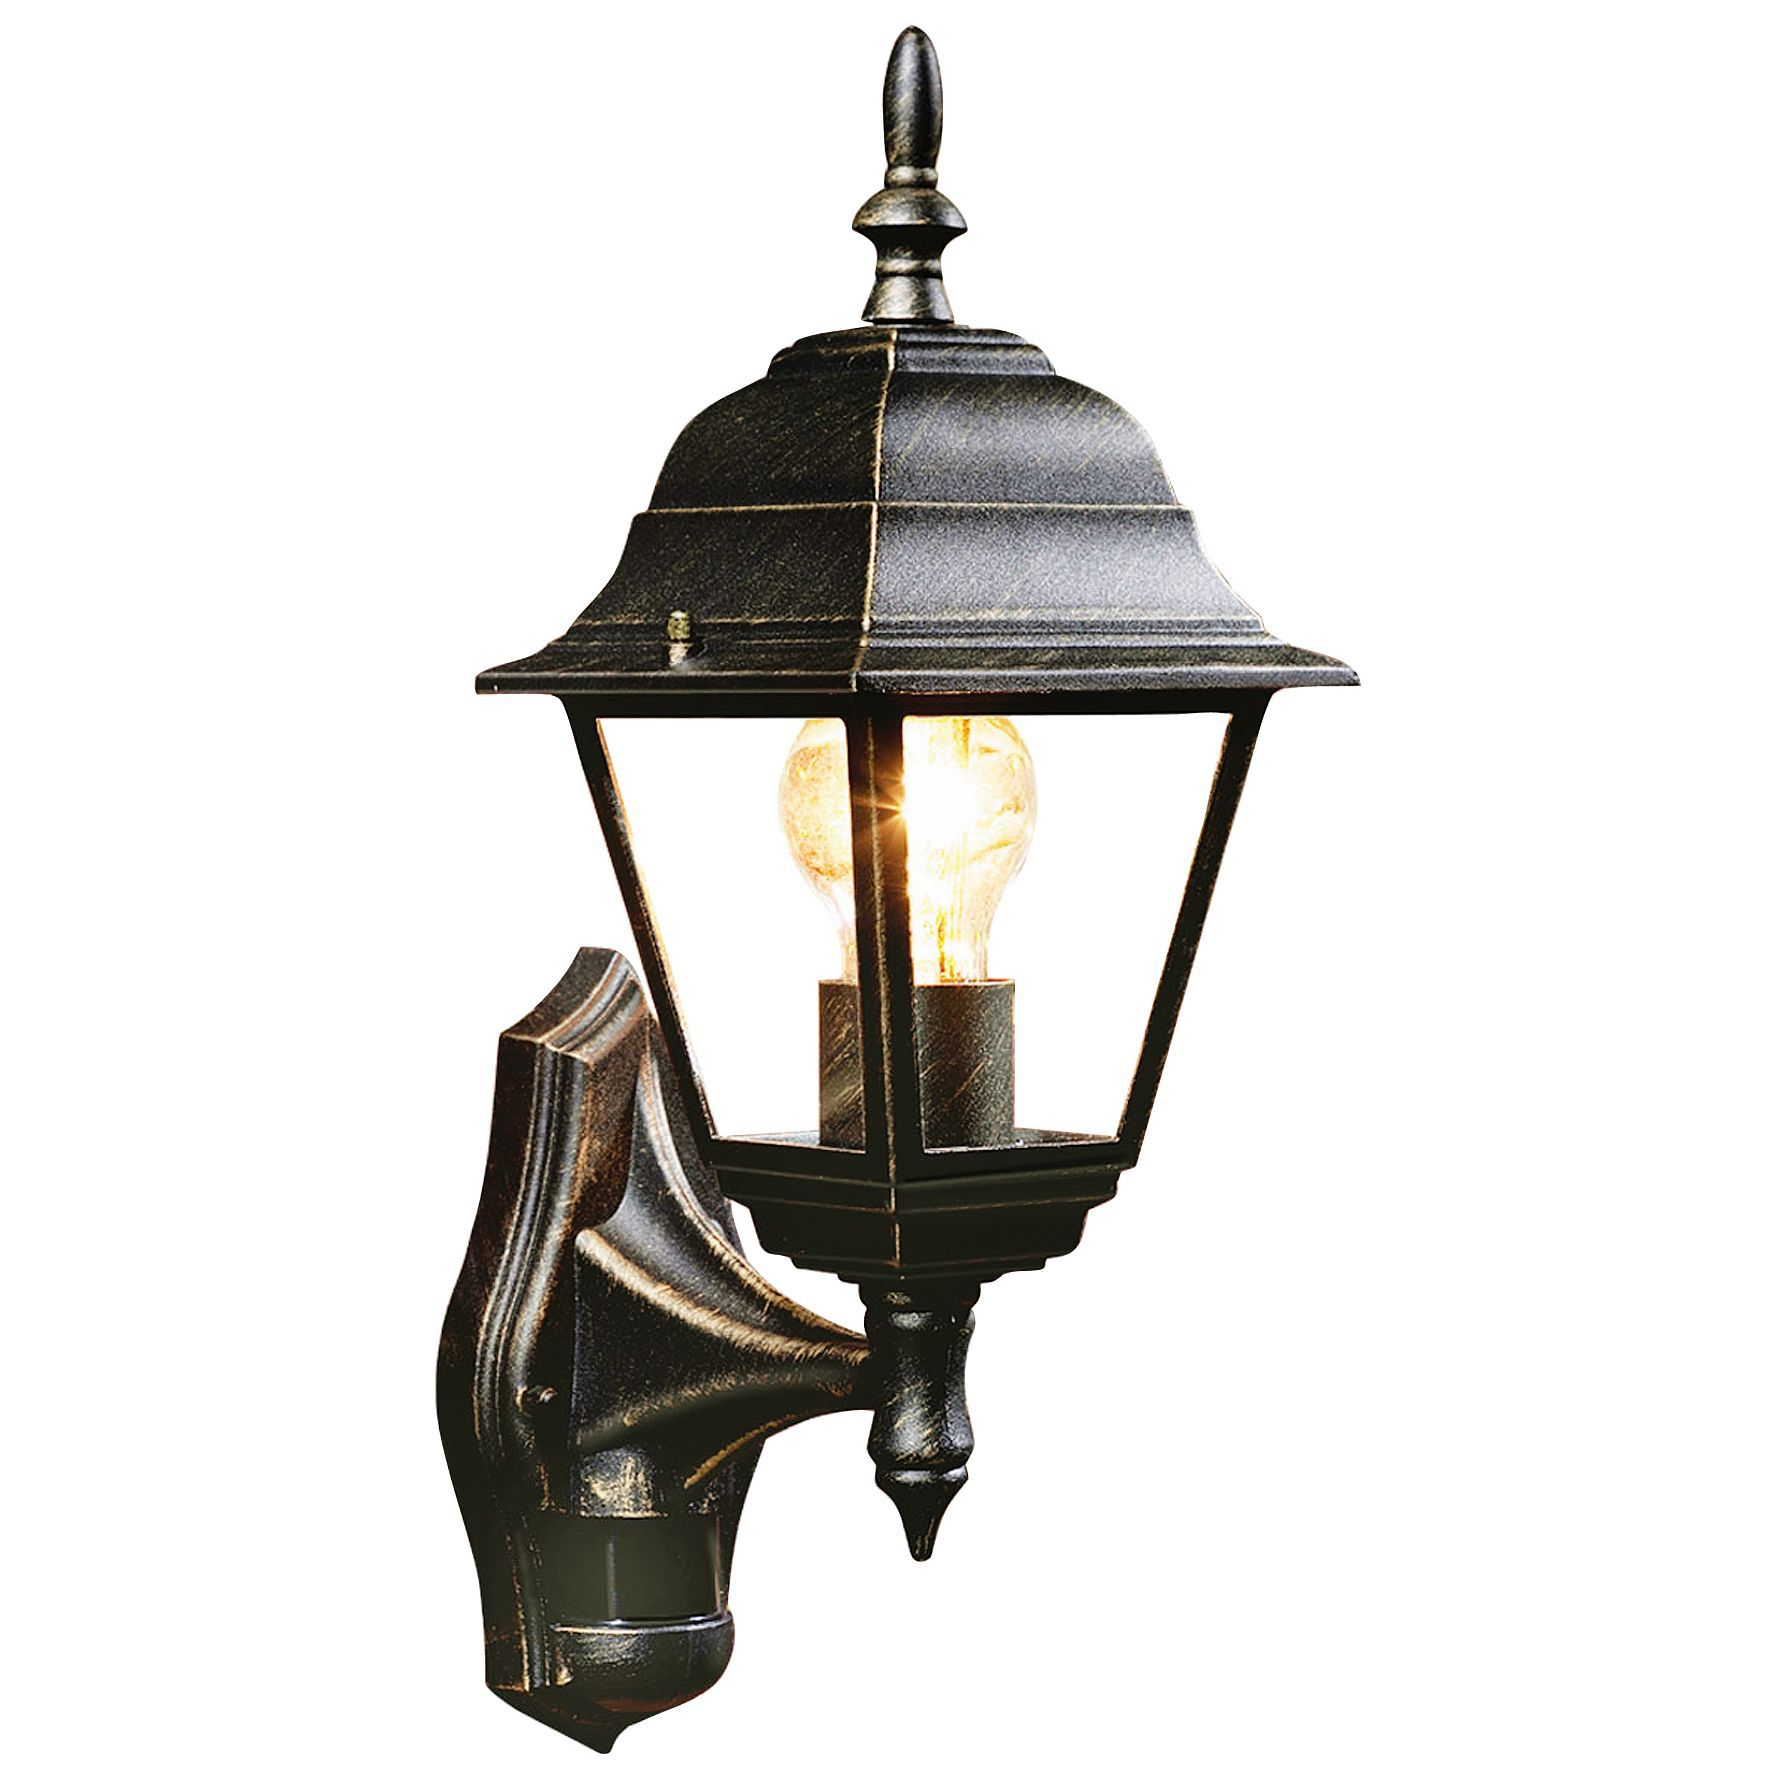 Antique effect wall lights trweb for blooma sirah solar powered led wall light departments diy at bq workwithnaturefo